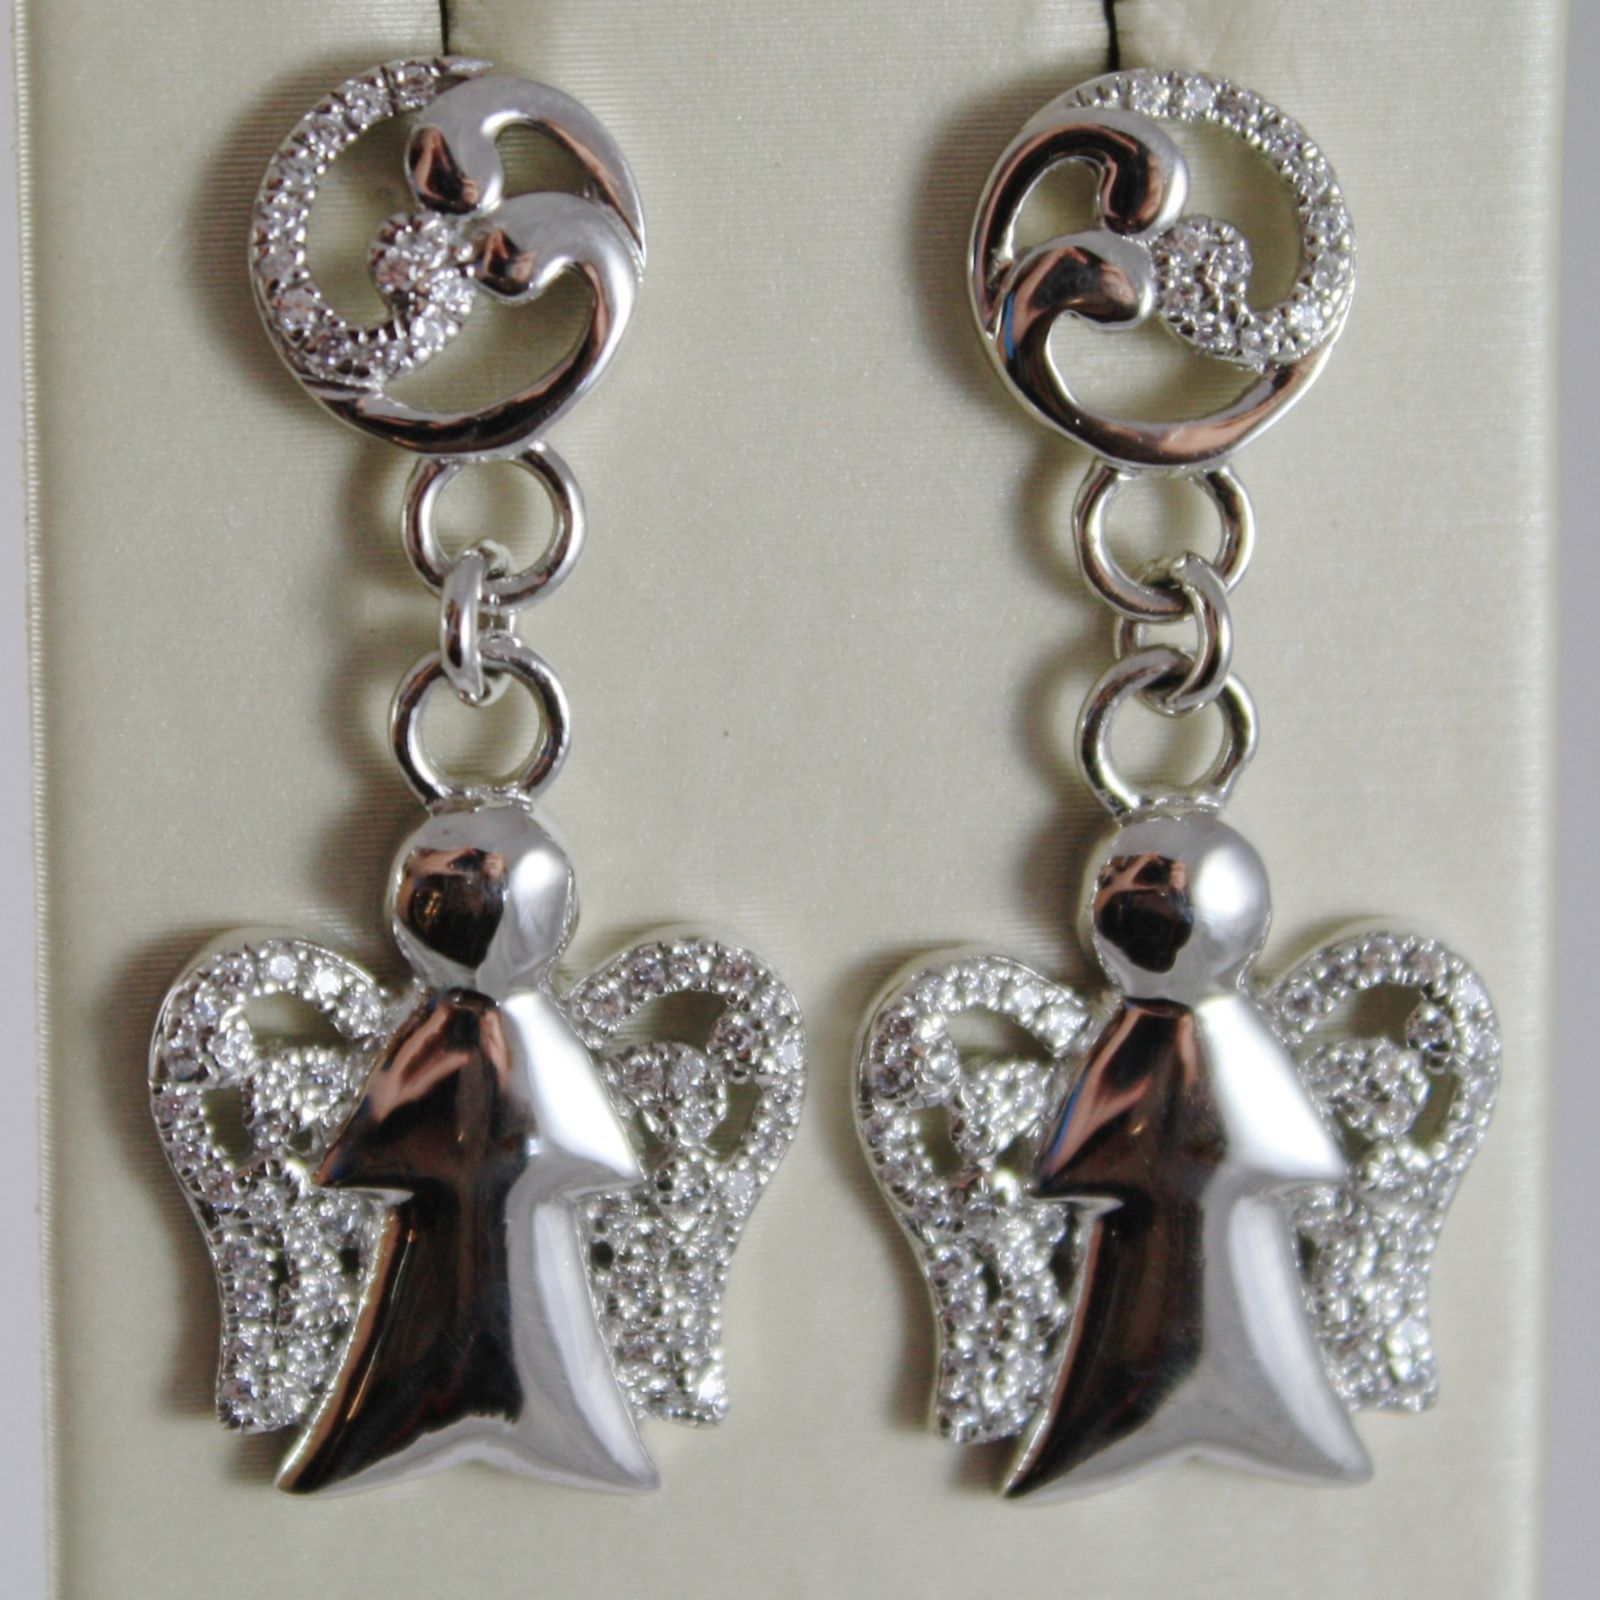 925 STERLING SILVER EARRINGS ANGELS PENDANT MADE IN ITALY BY ROBERTO GIANNOTTI